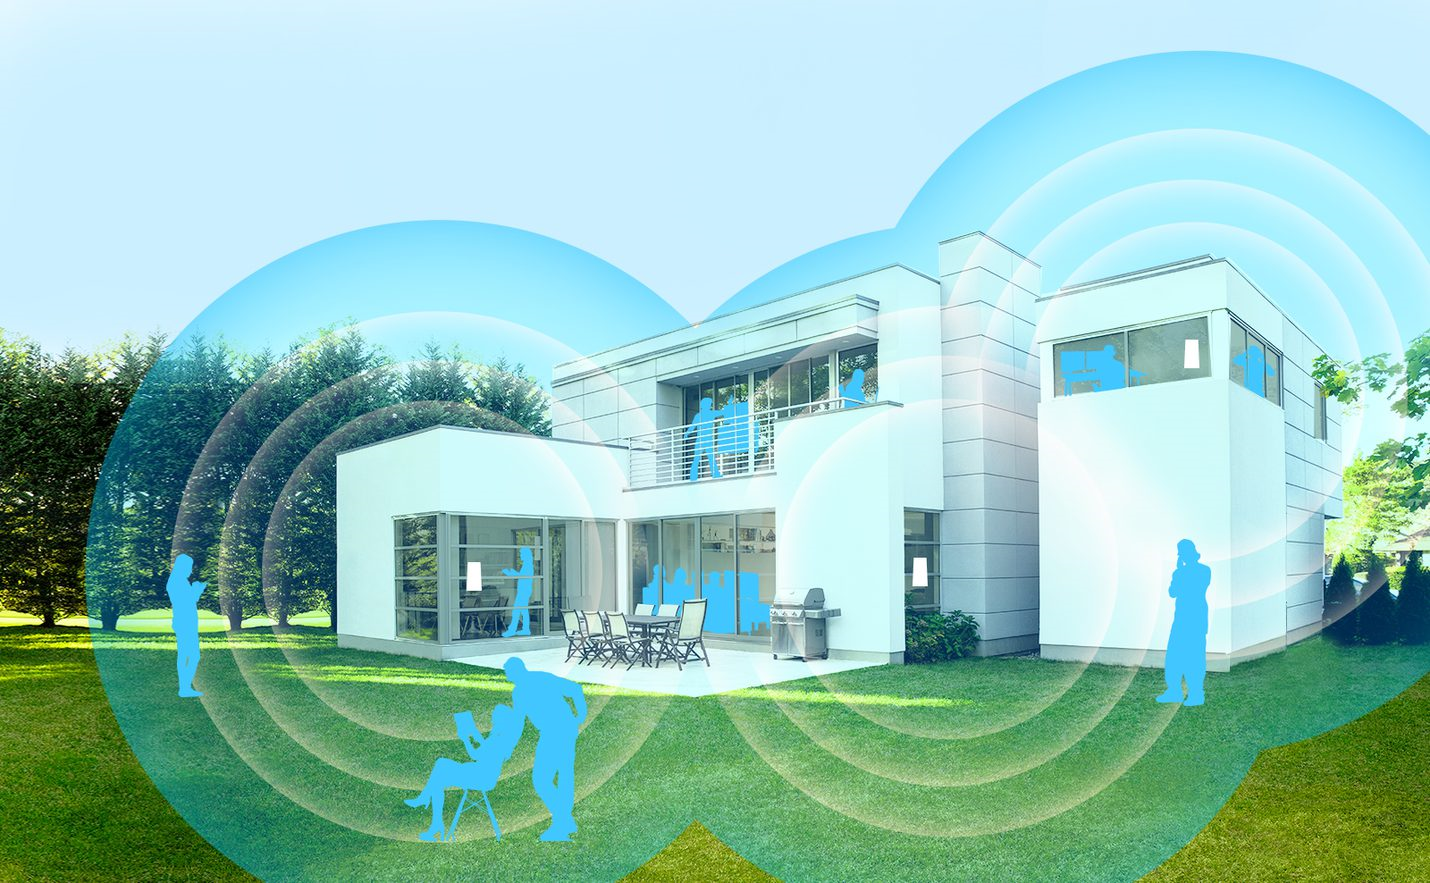 Whole Home WiFi - Our whole home WiFi provides enterprise-strength network capabilities with at-home simplicity. It has been designed to meet the demands of the modern connected home. Easy guest access lets you keep track of who's on your network, who's off, and how much they're using.Enjoy high-performance connectivity with entire house coverage. Let us remove your dead spots and turbocharge your WiFi..